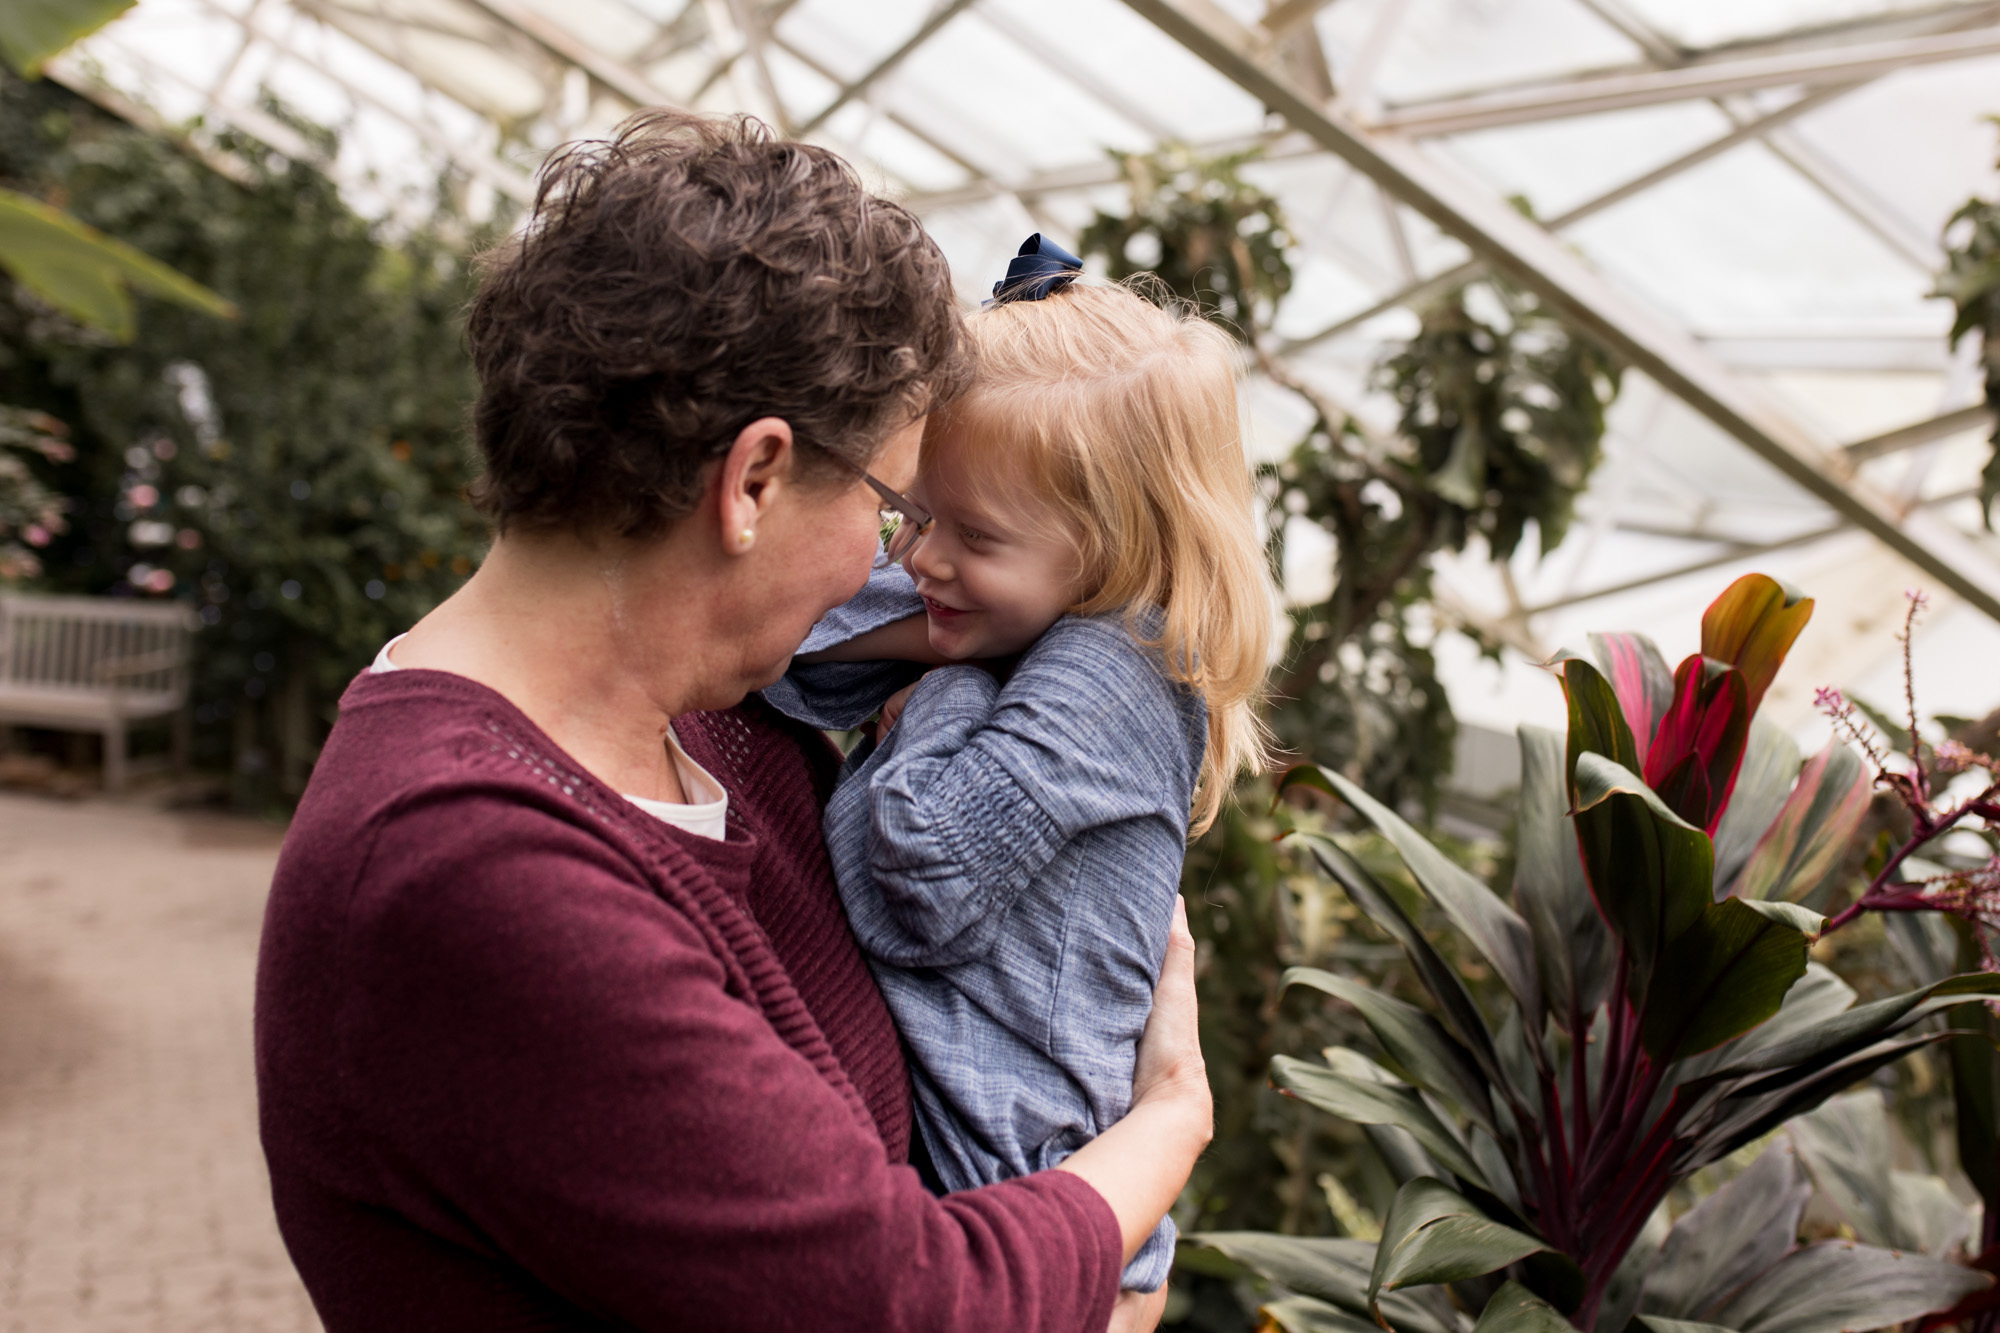 grandma and granddaughter during family photography session at Foellinger-Freimann Botanical Conservatory in Fort Wayne Indiana